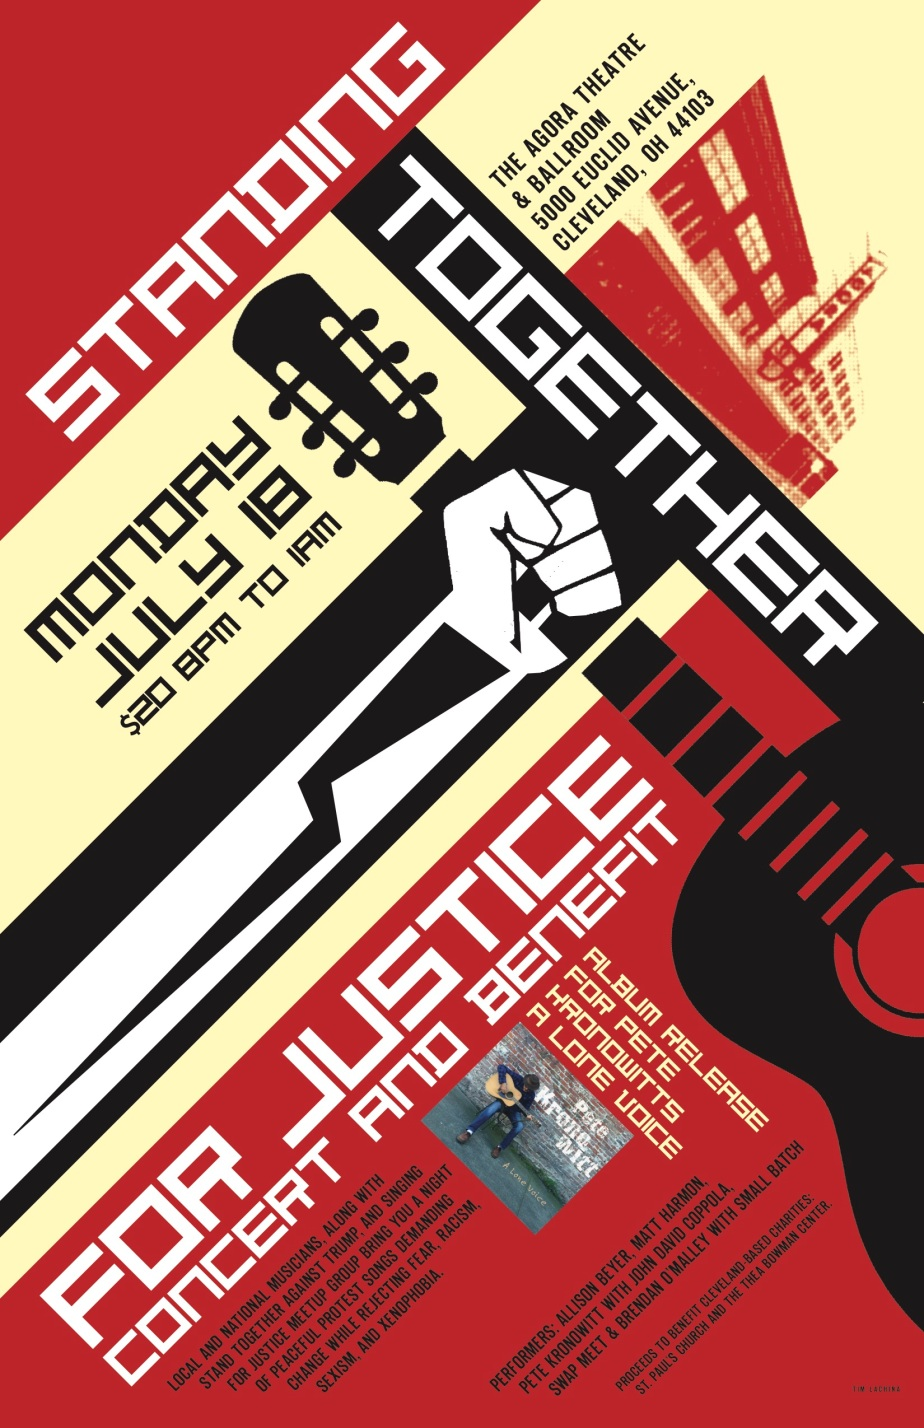 stand for justice poster draft2.jpg